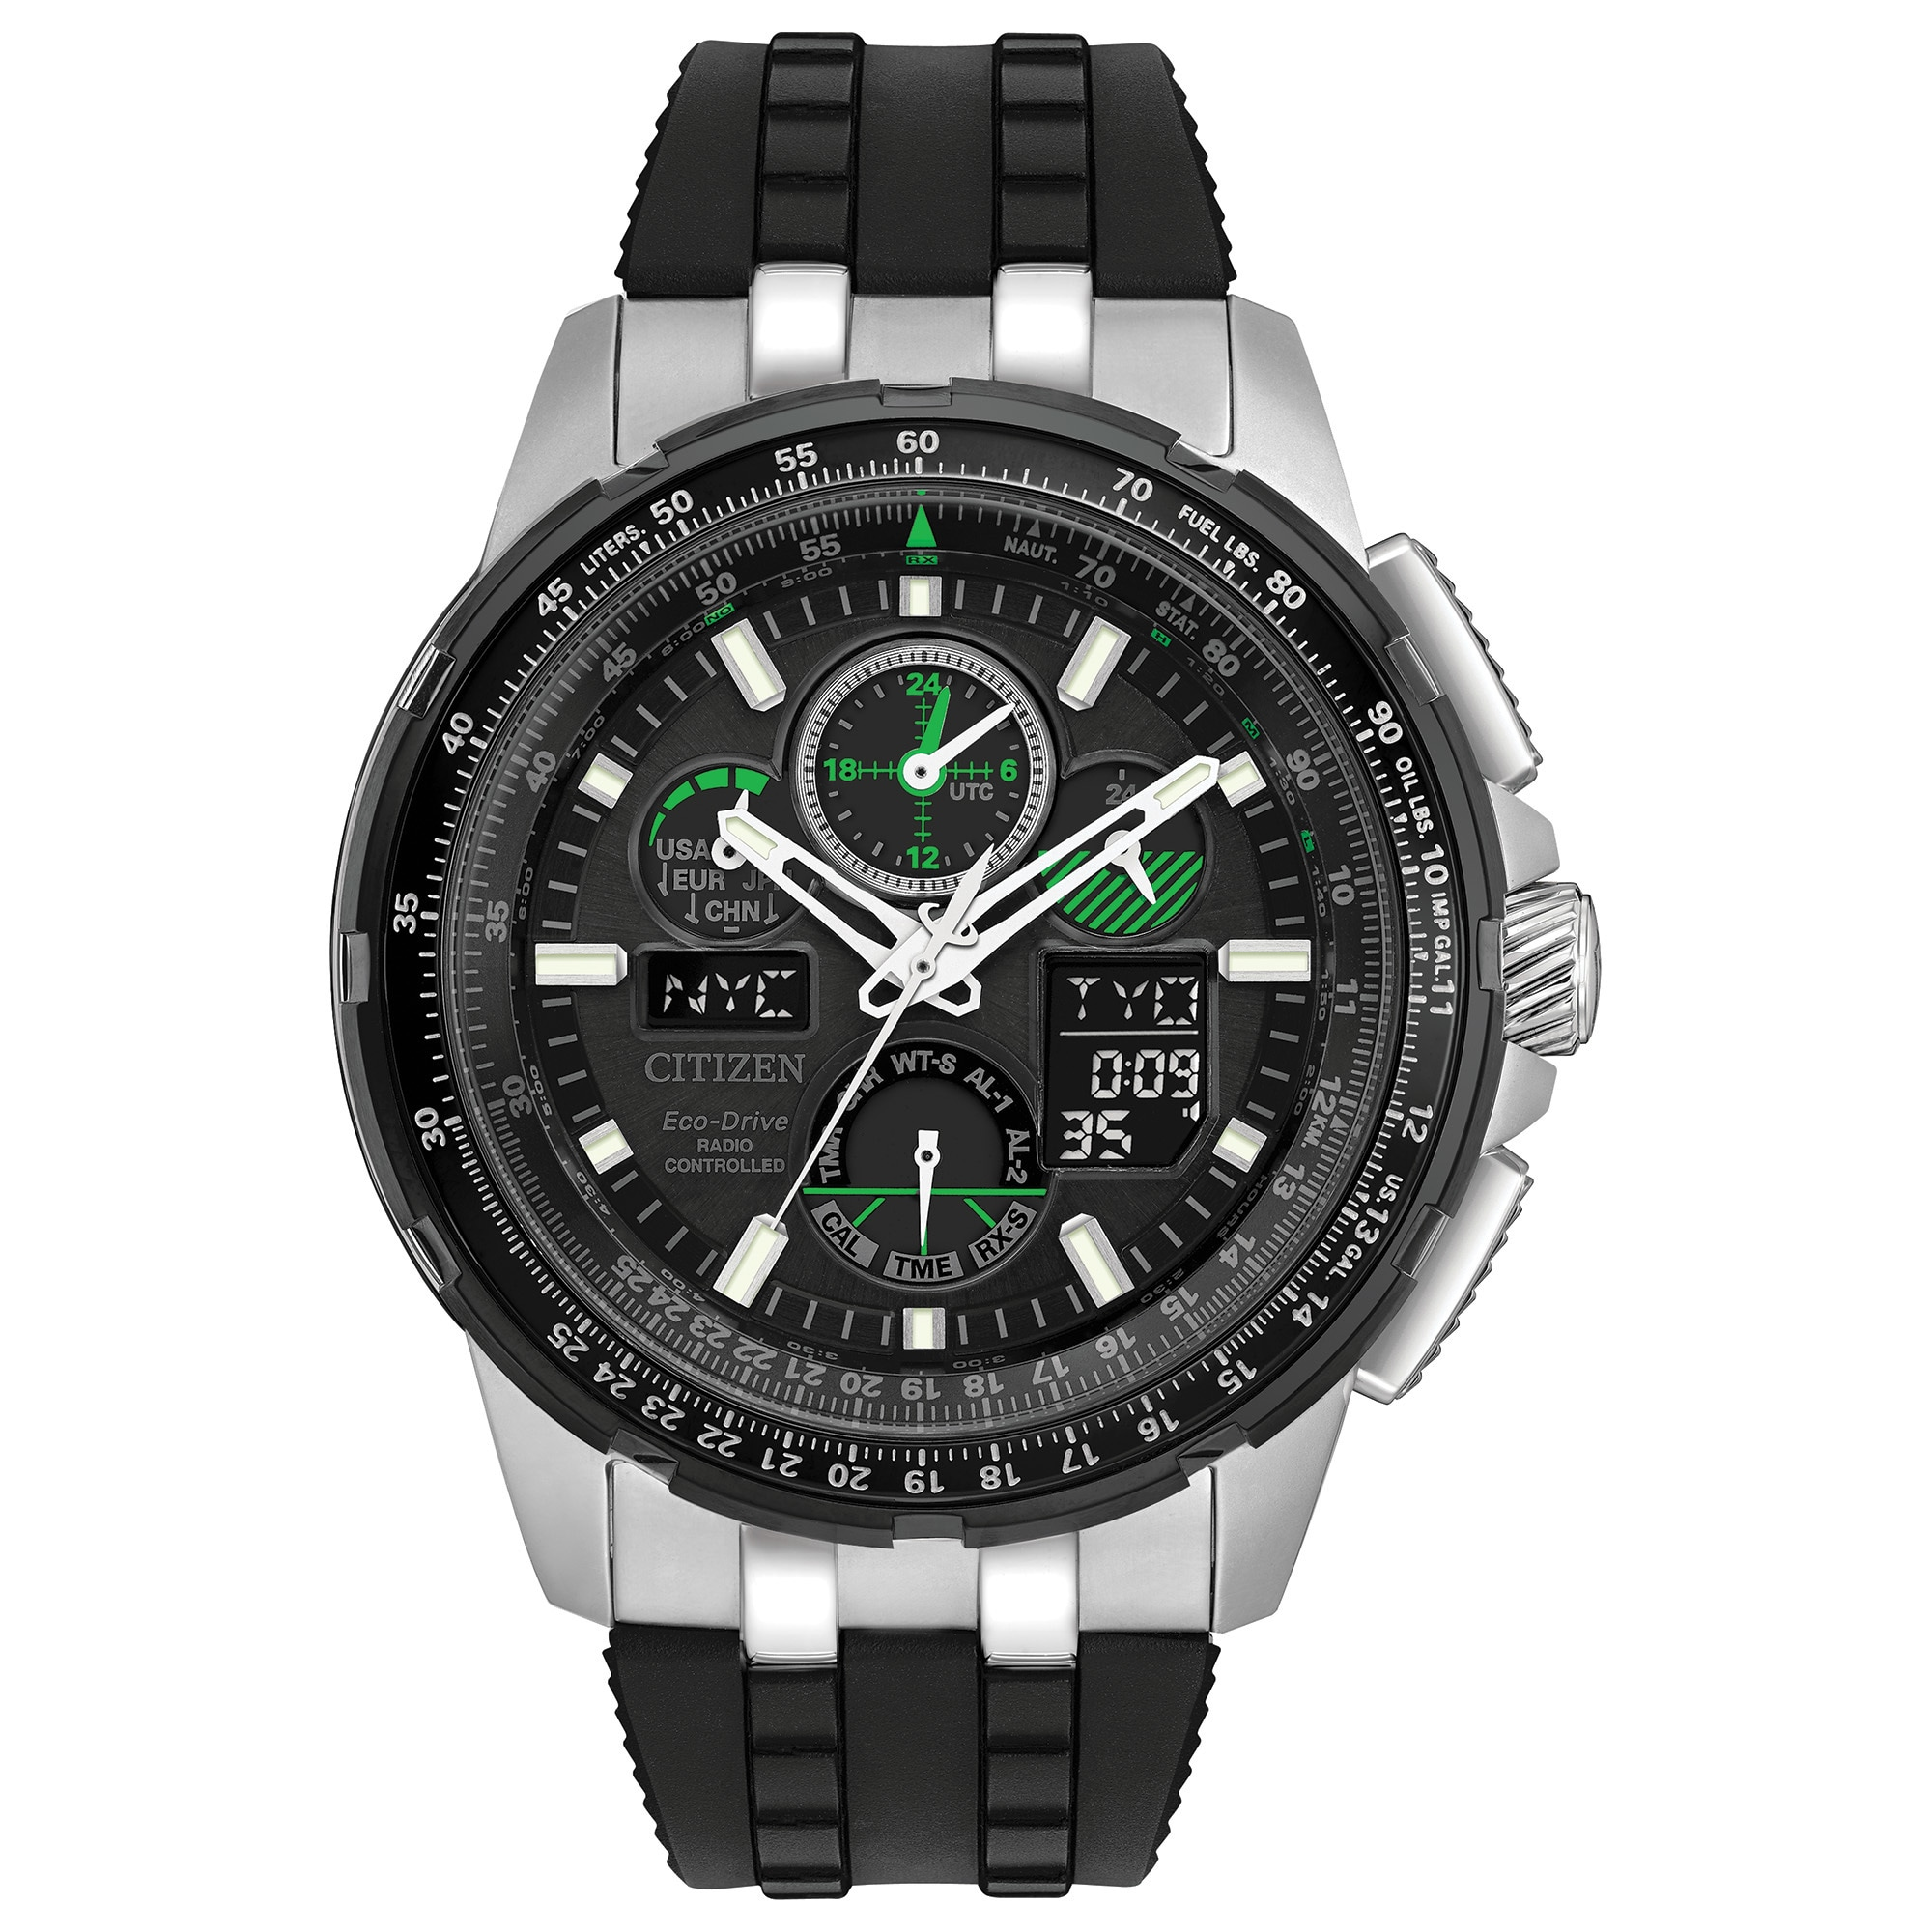 Citizen Men's JY8051-08E Eco-Drive Skyhawk Atomic Timekee...